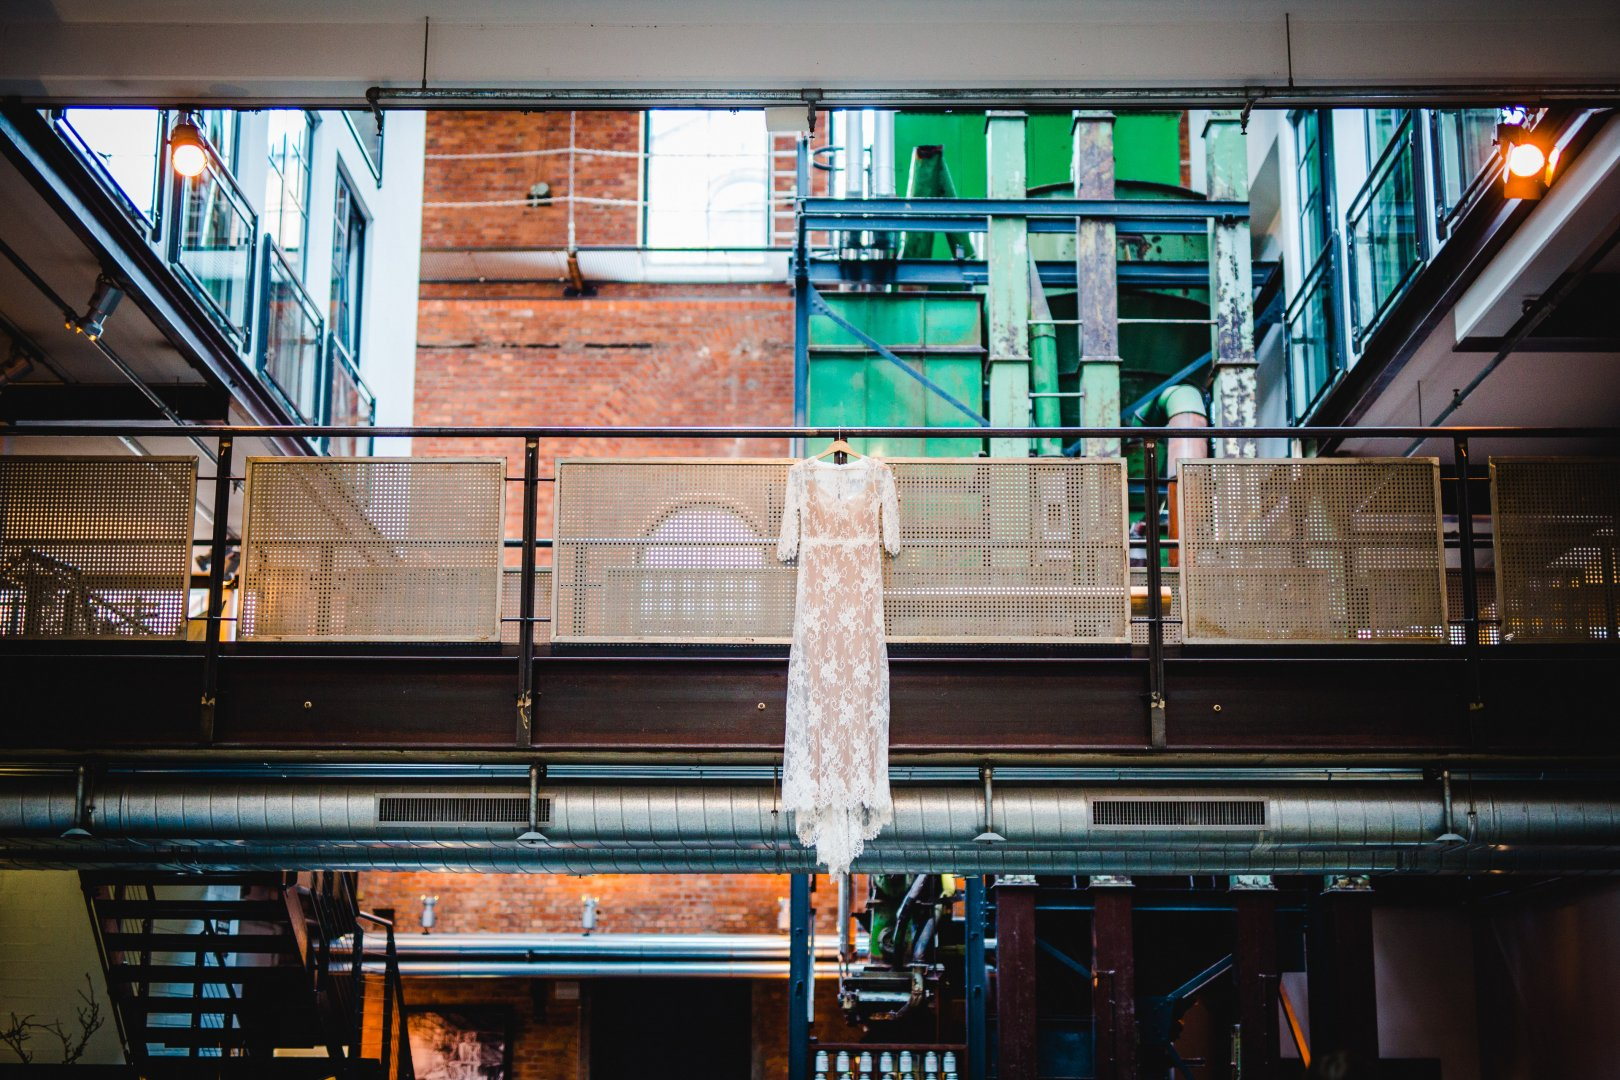 Urban area Transport Architecture Building Iron Glass Window City Daylighting Metal Symmetry Stairs Beam Interior design Reflection House Steel Ceiling